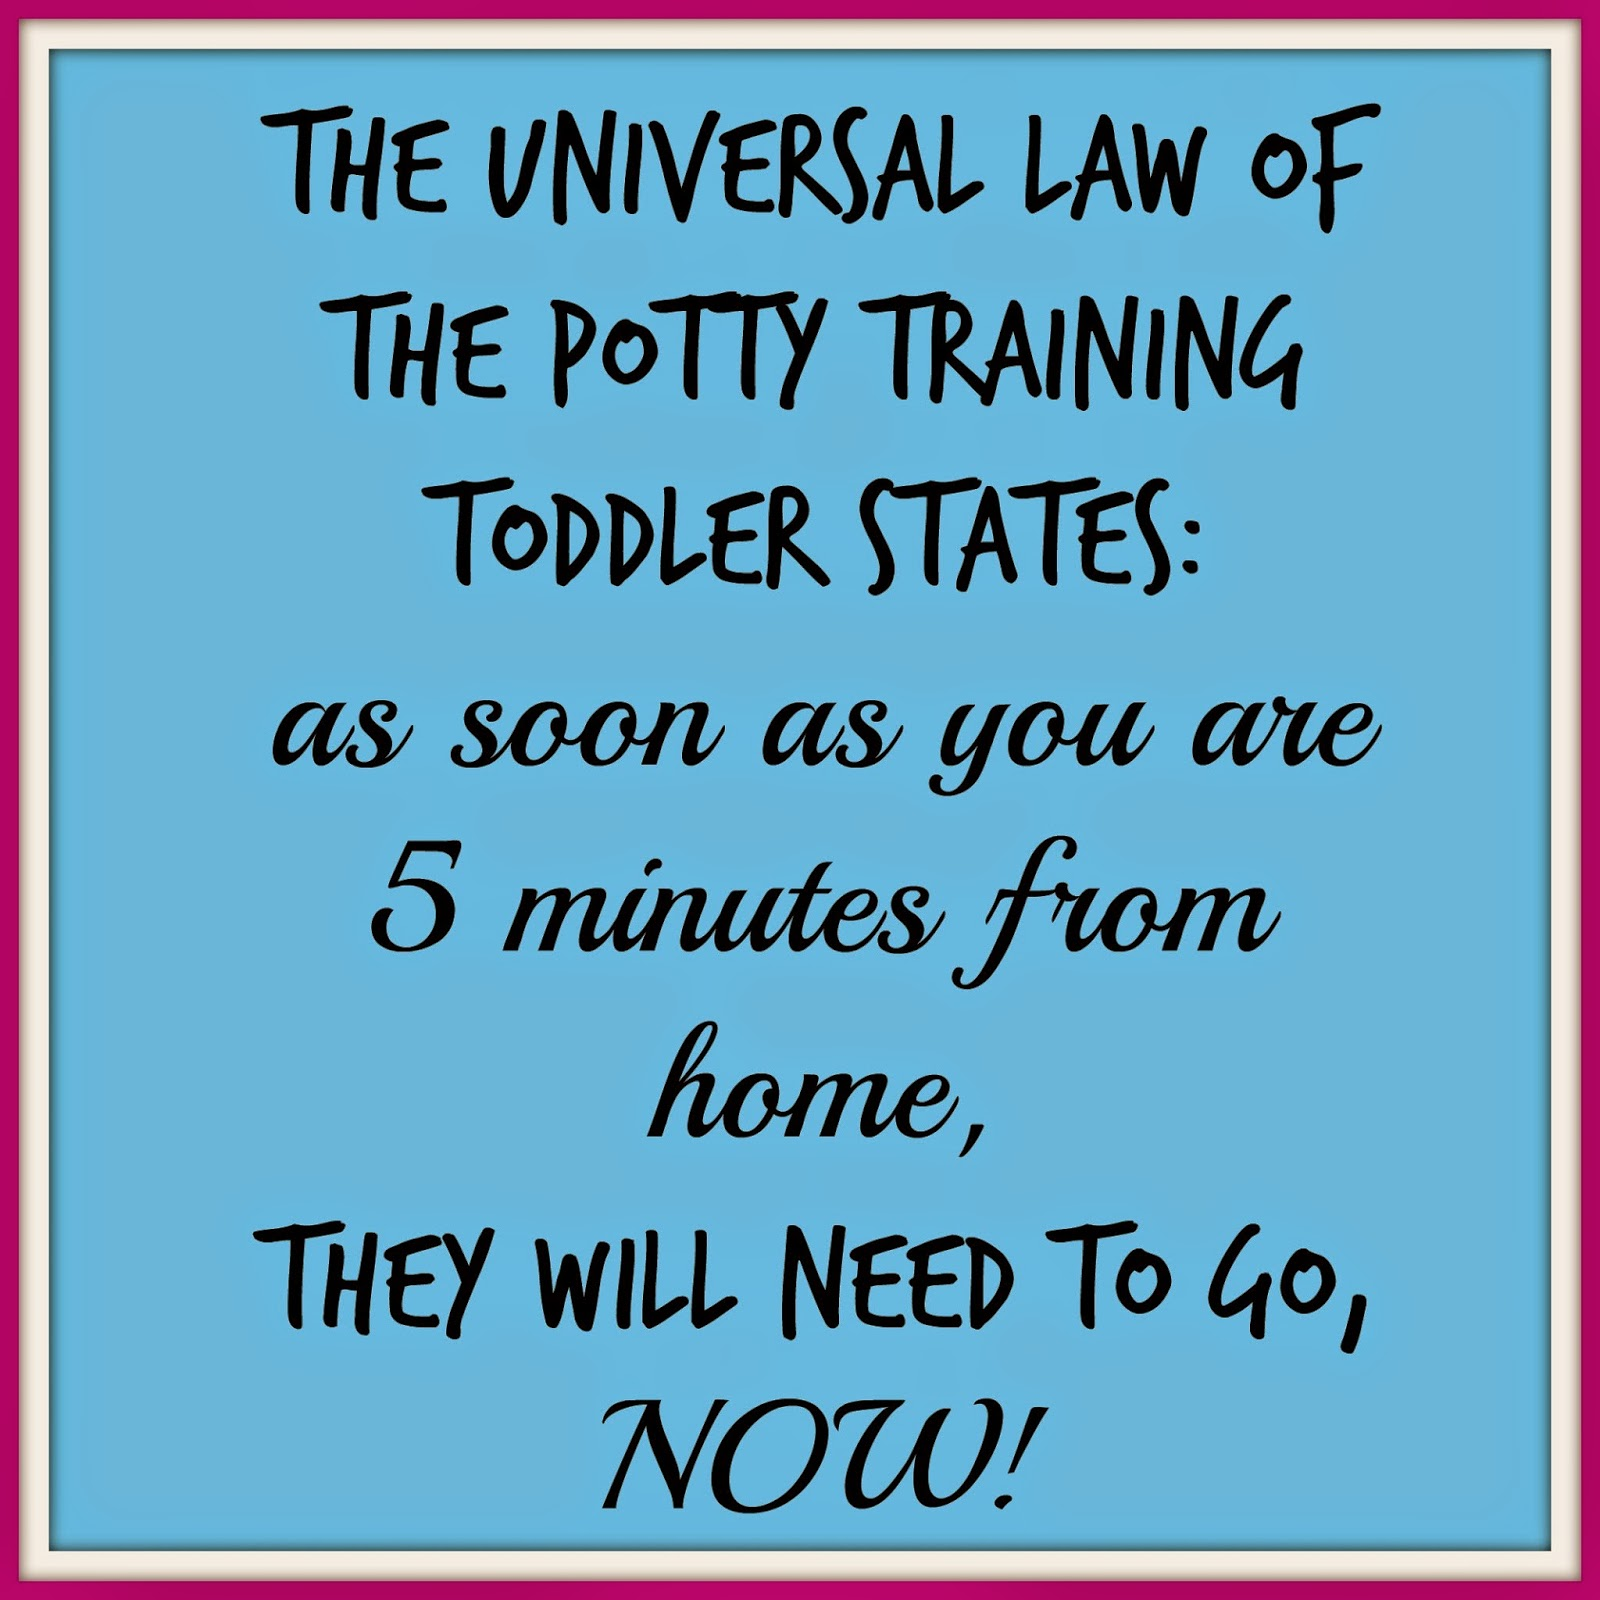 toilet training image, potty training meme